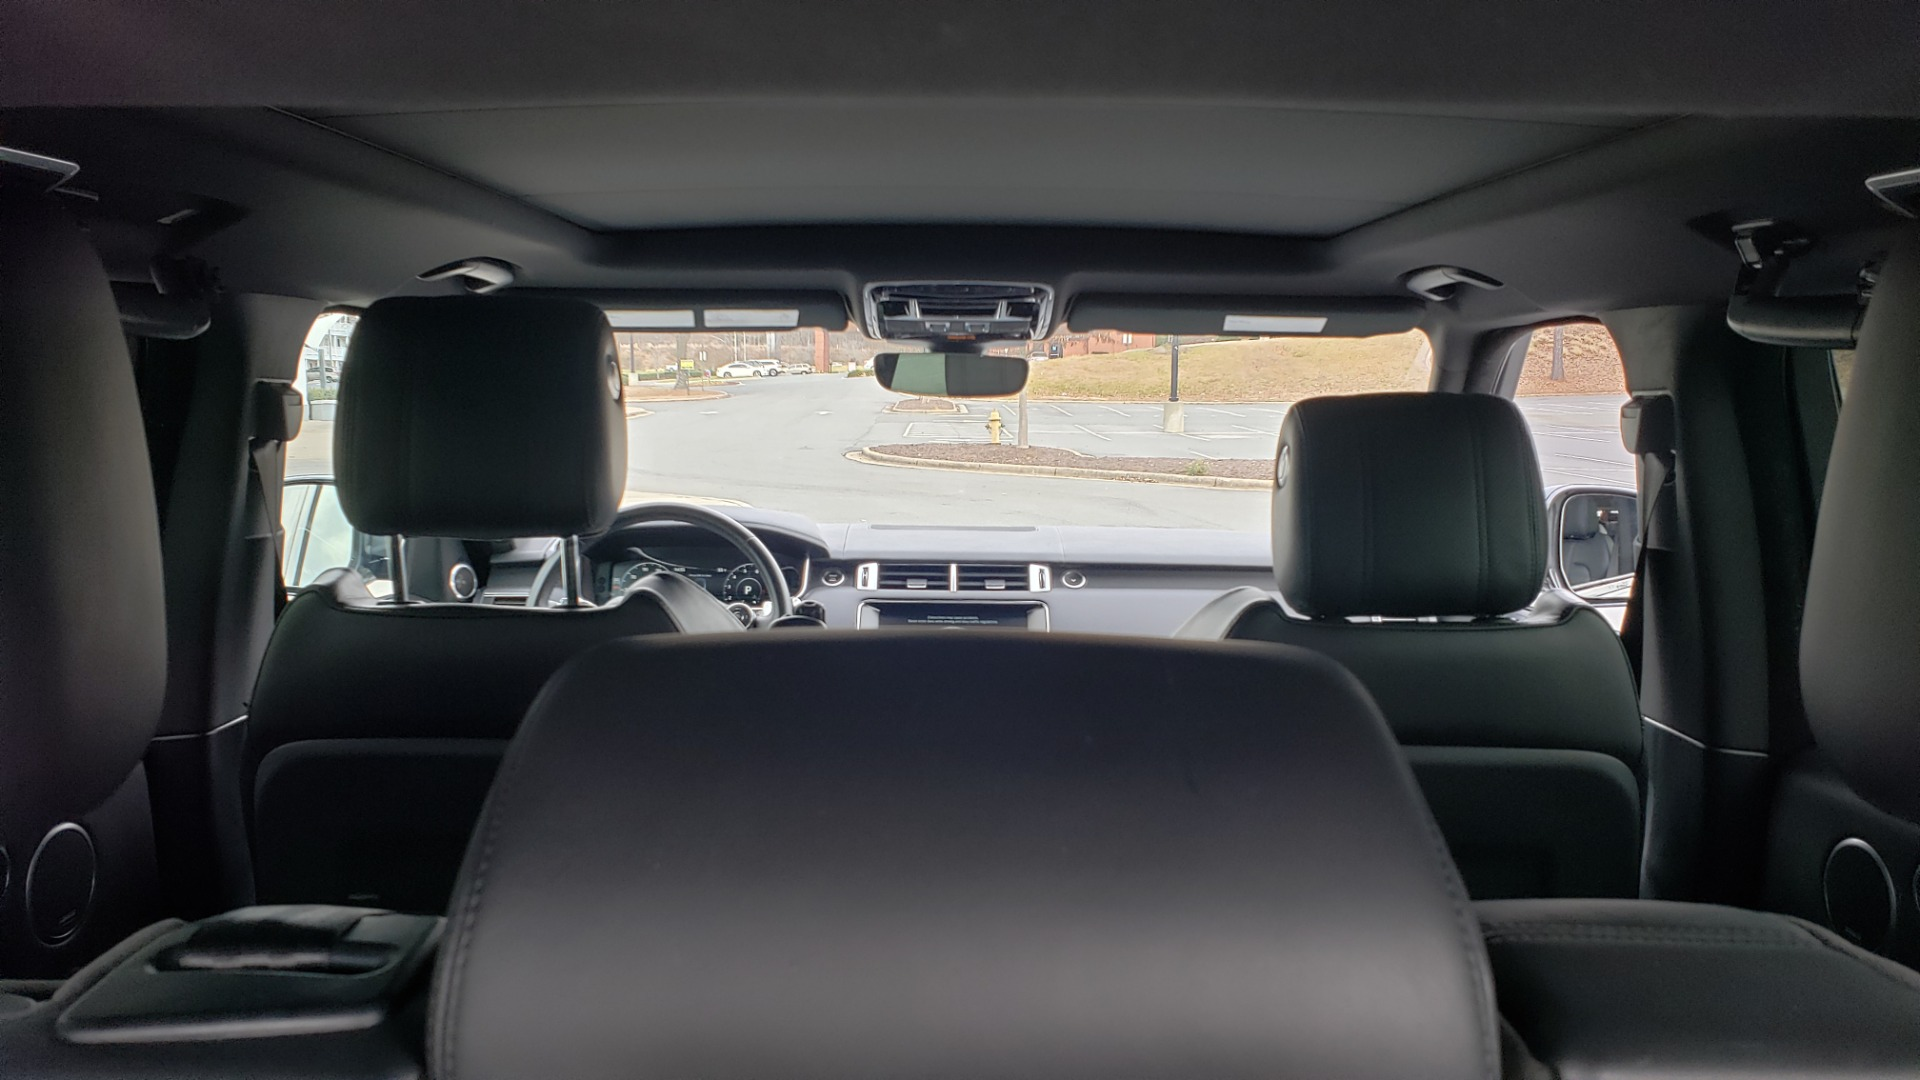 Used 2017 Land Rover RANGE ROVER SPORT HSE DYNAMIC / SC V6 / NAV / MERIDIAN / PANO-ROOF / REARVIEW for sale Sold at Formula Imports in Charlotte NC 28227 120